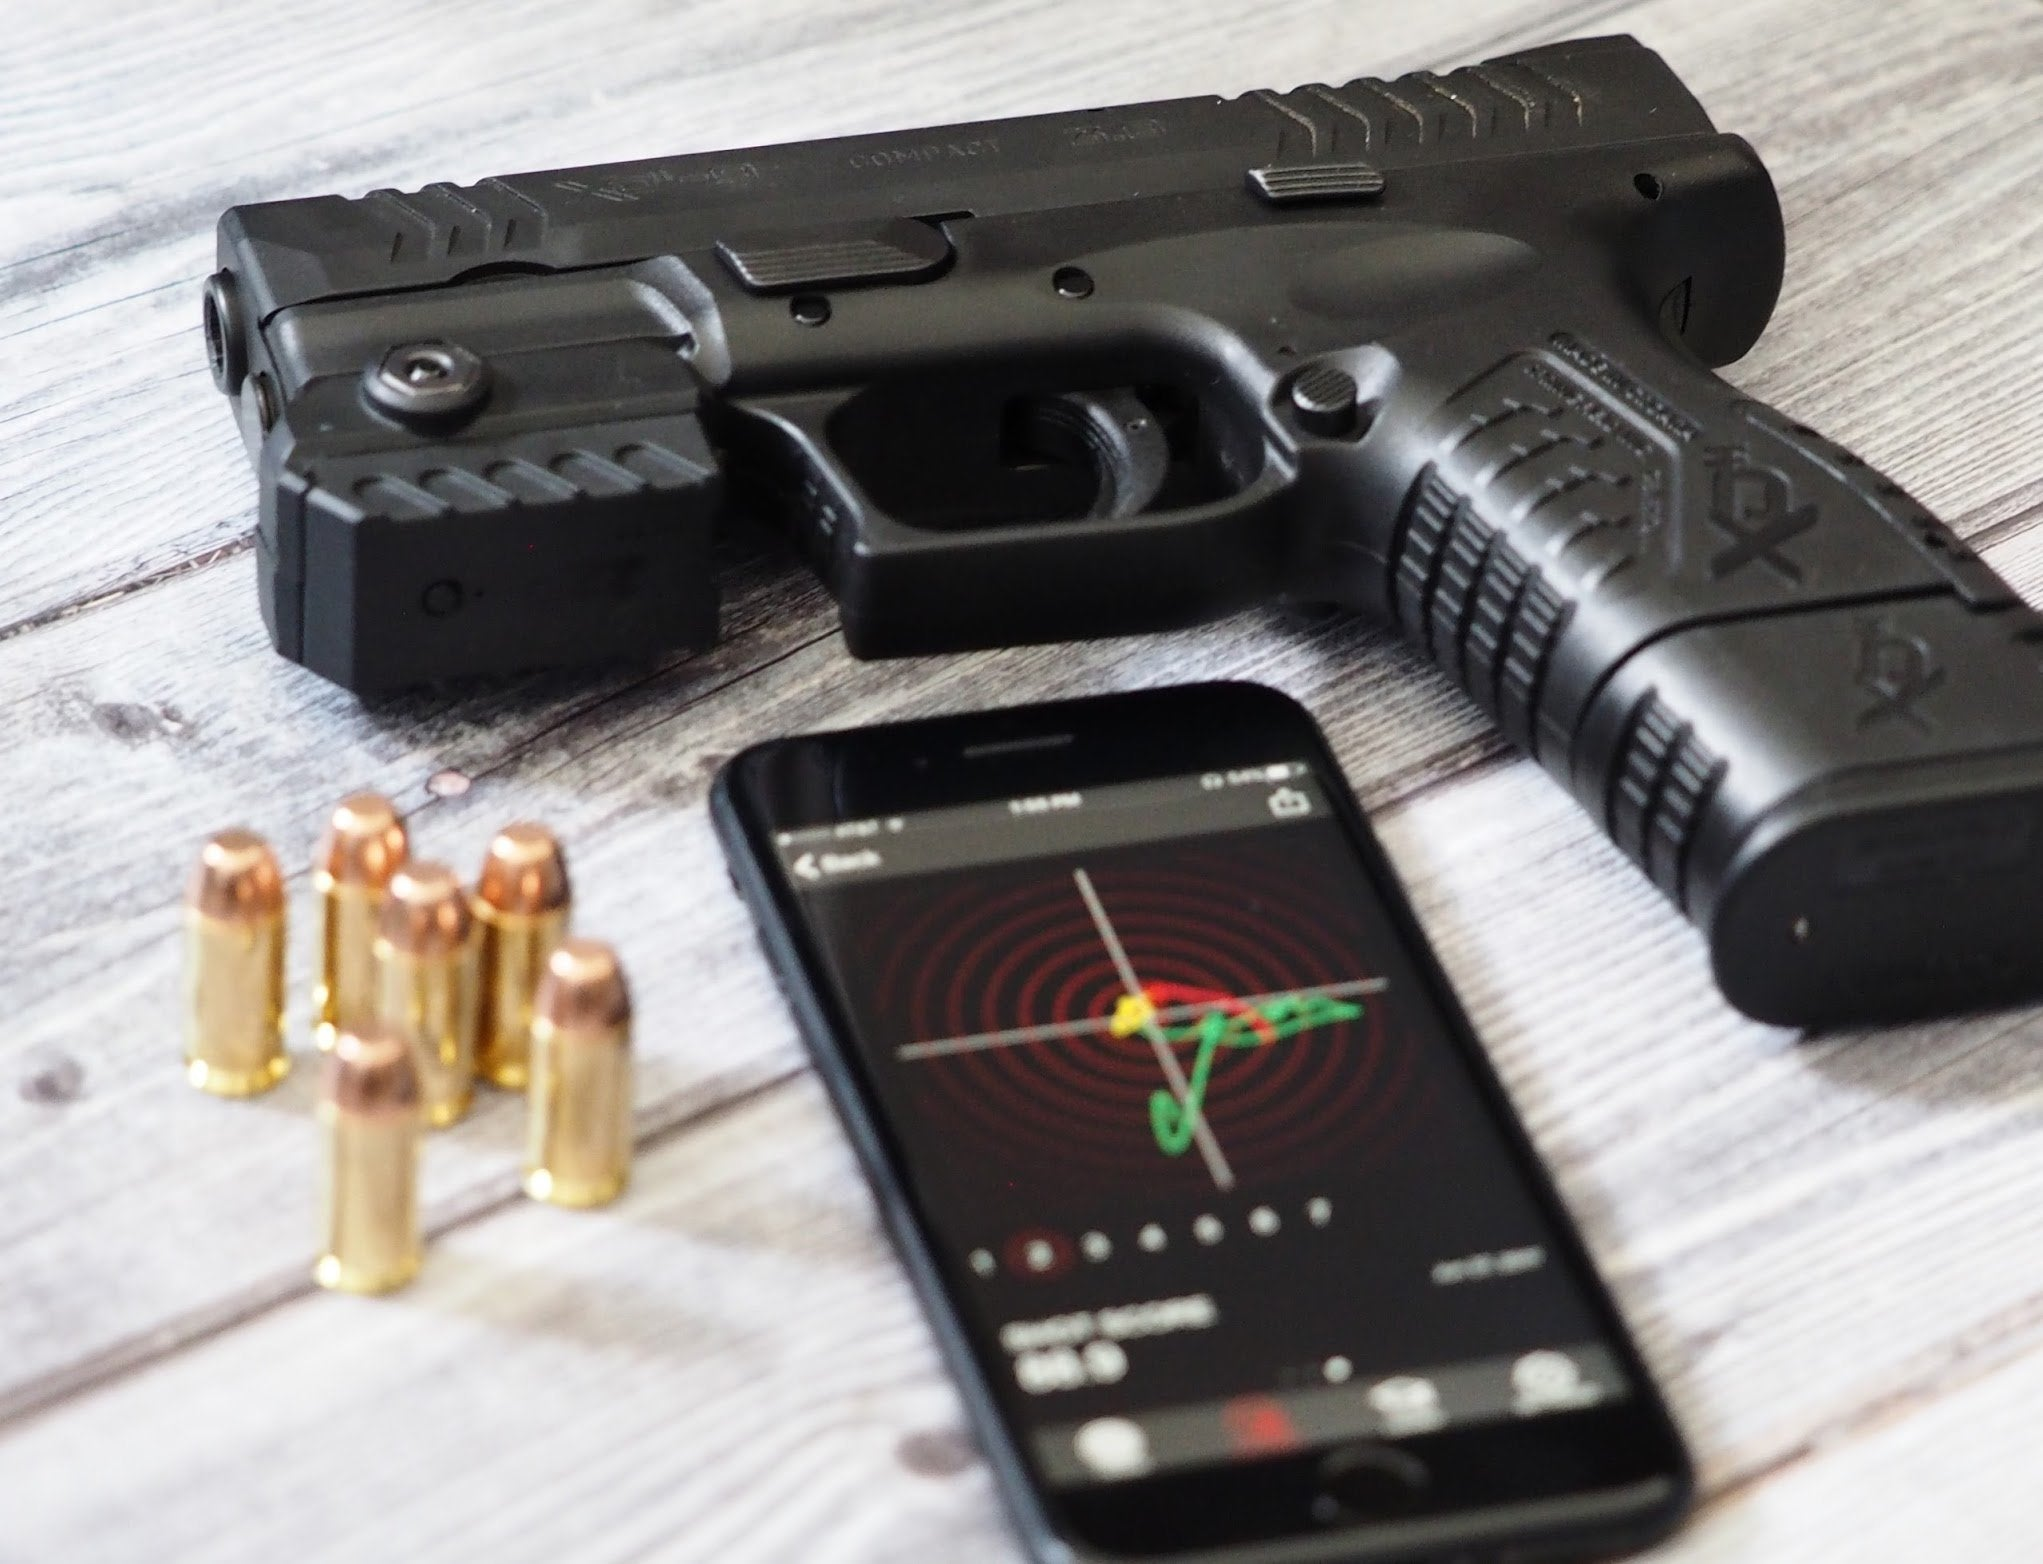 MantisX Firearm Training System - gun, smartphone and bullets